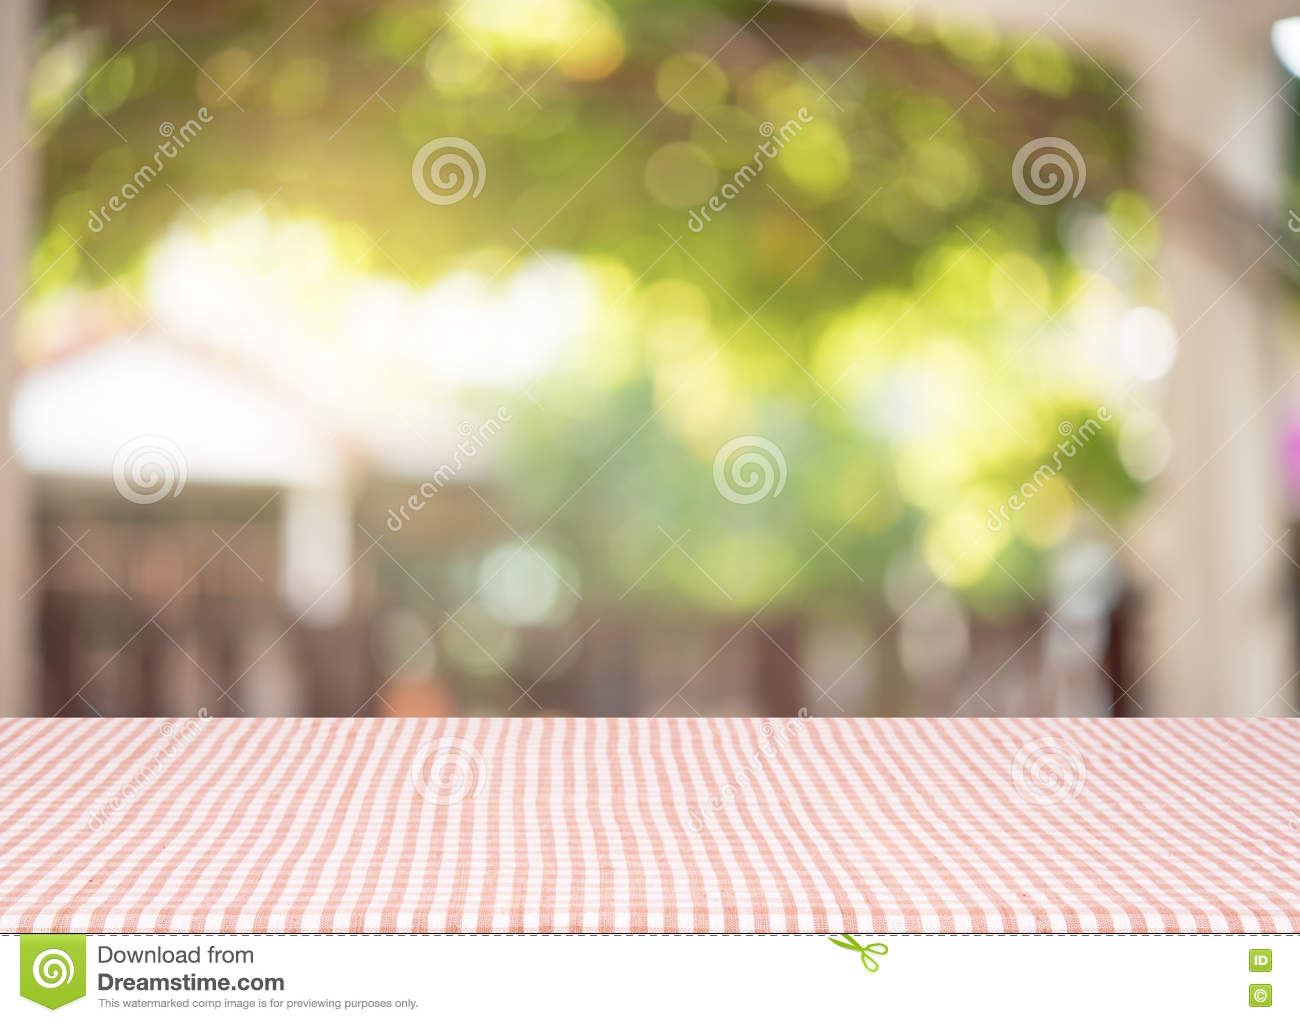 Wood Empty material wooden, deck, table with blurred abstract ba